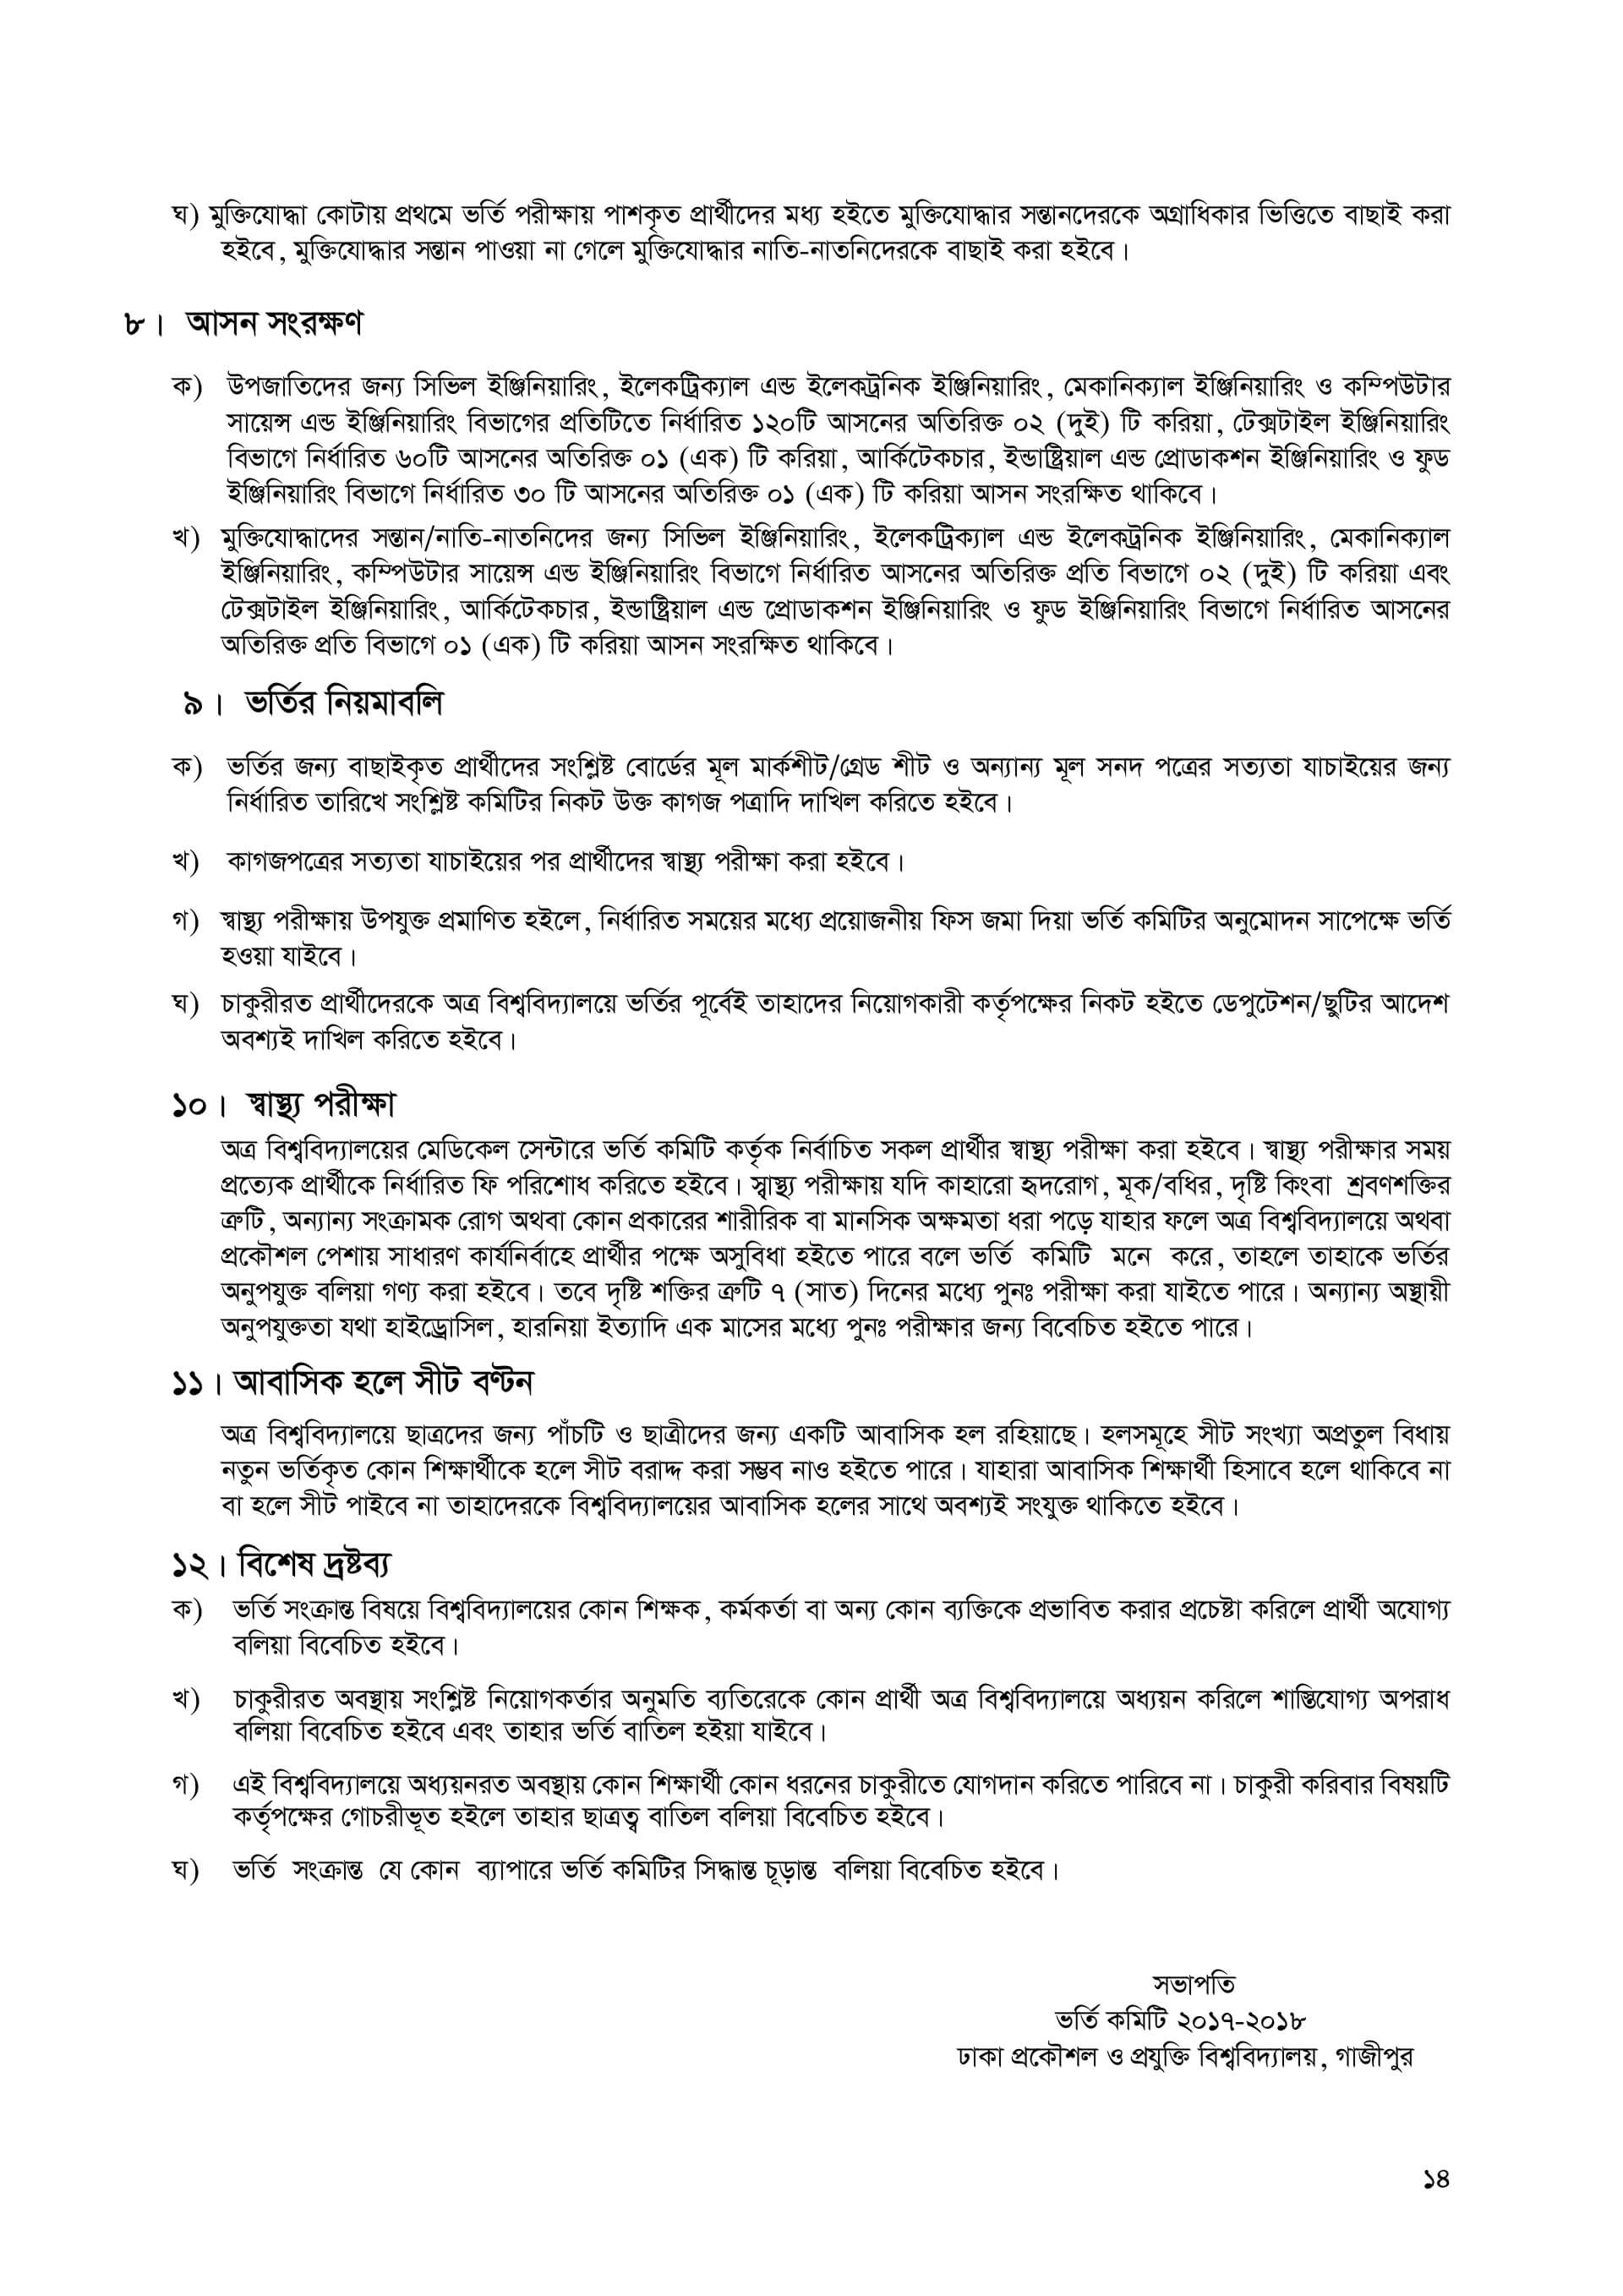 DUET Admission guideline-15